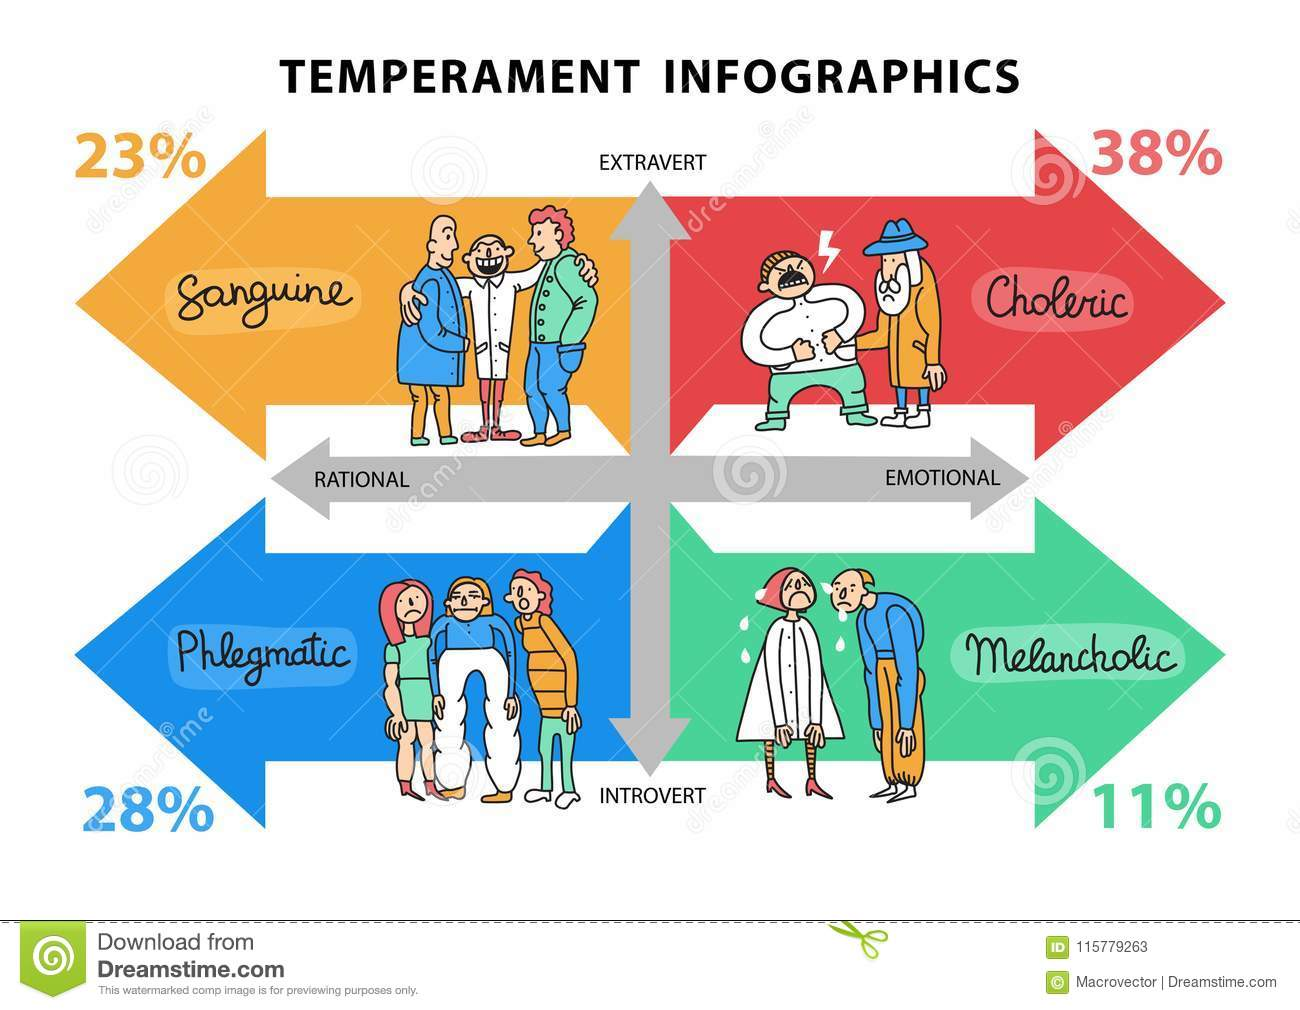 The four types of temperament